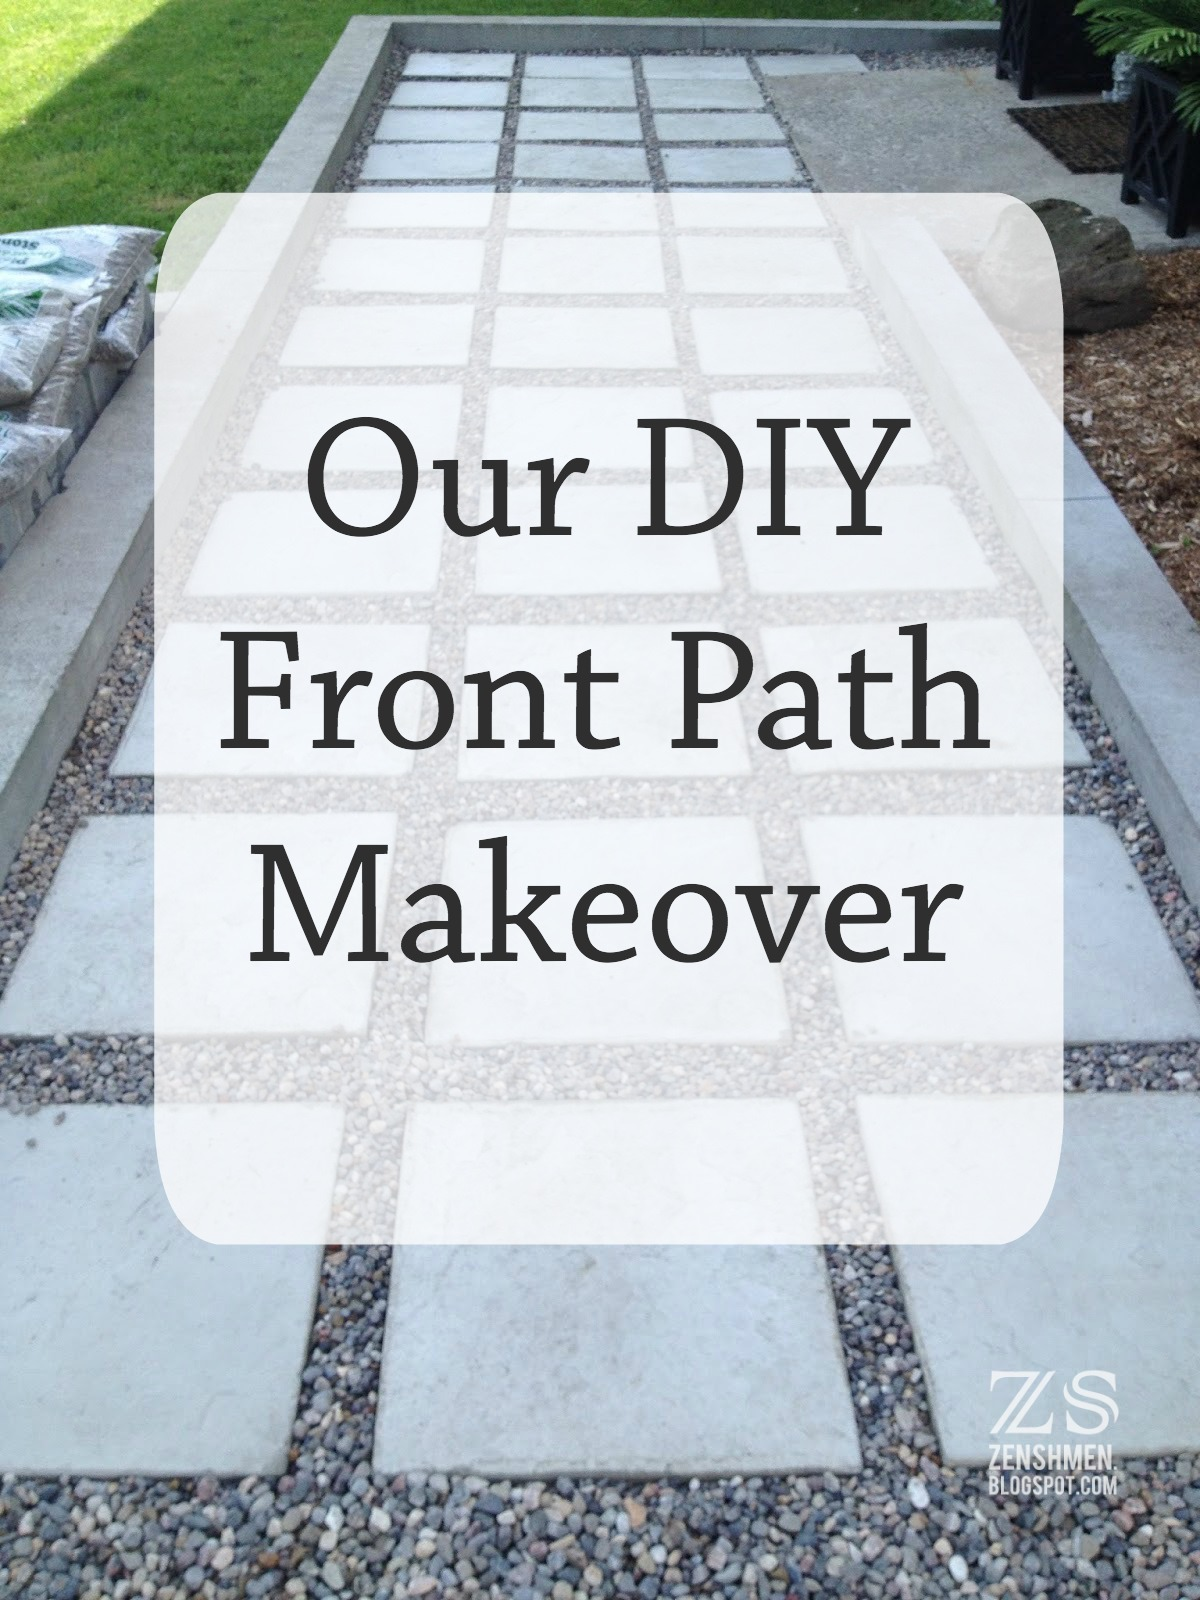 Our Diy Front Path Makeover Zenshmen Project Curb Eal Flagstone Pavers River